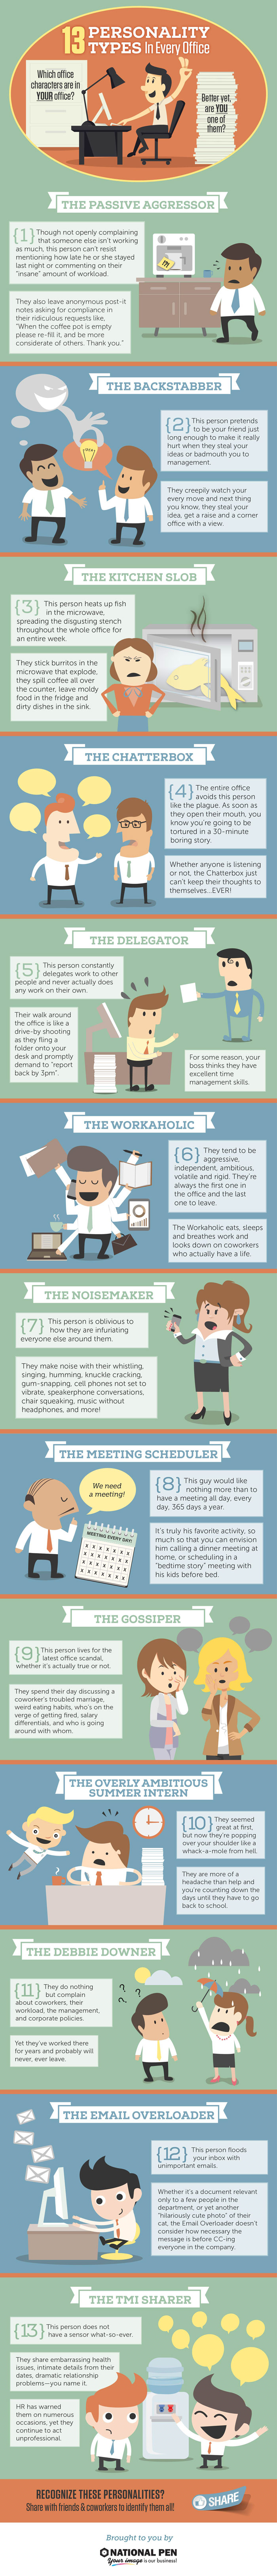 13 Personality Types – Who's In Your Office?